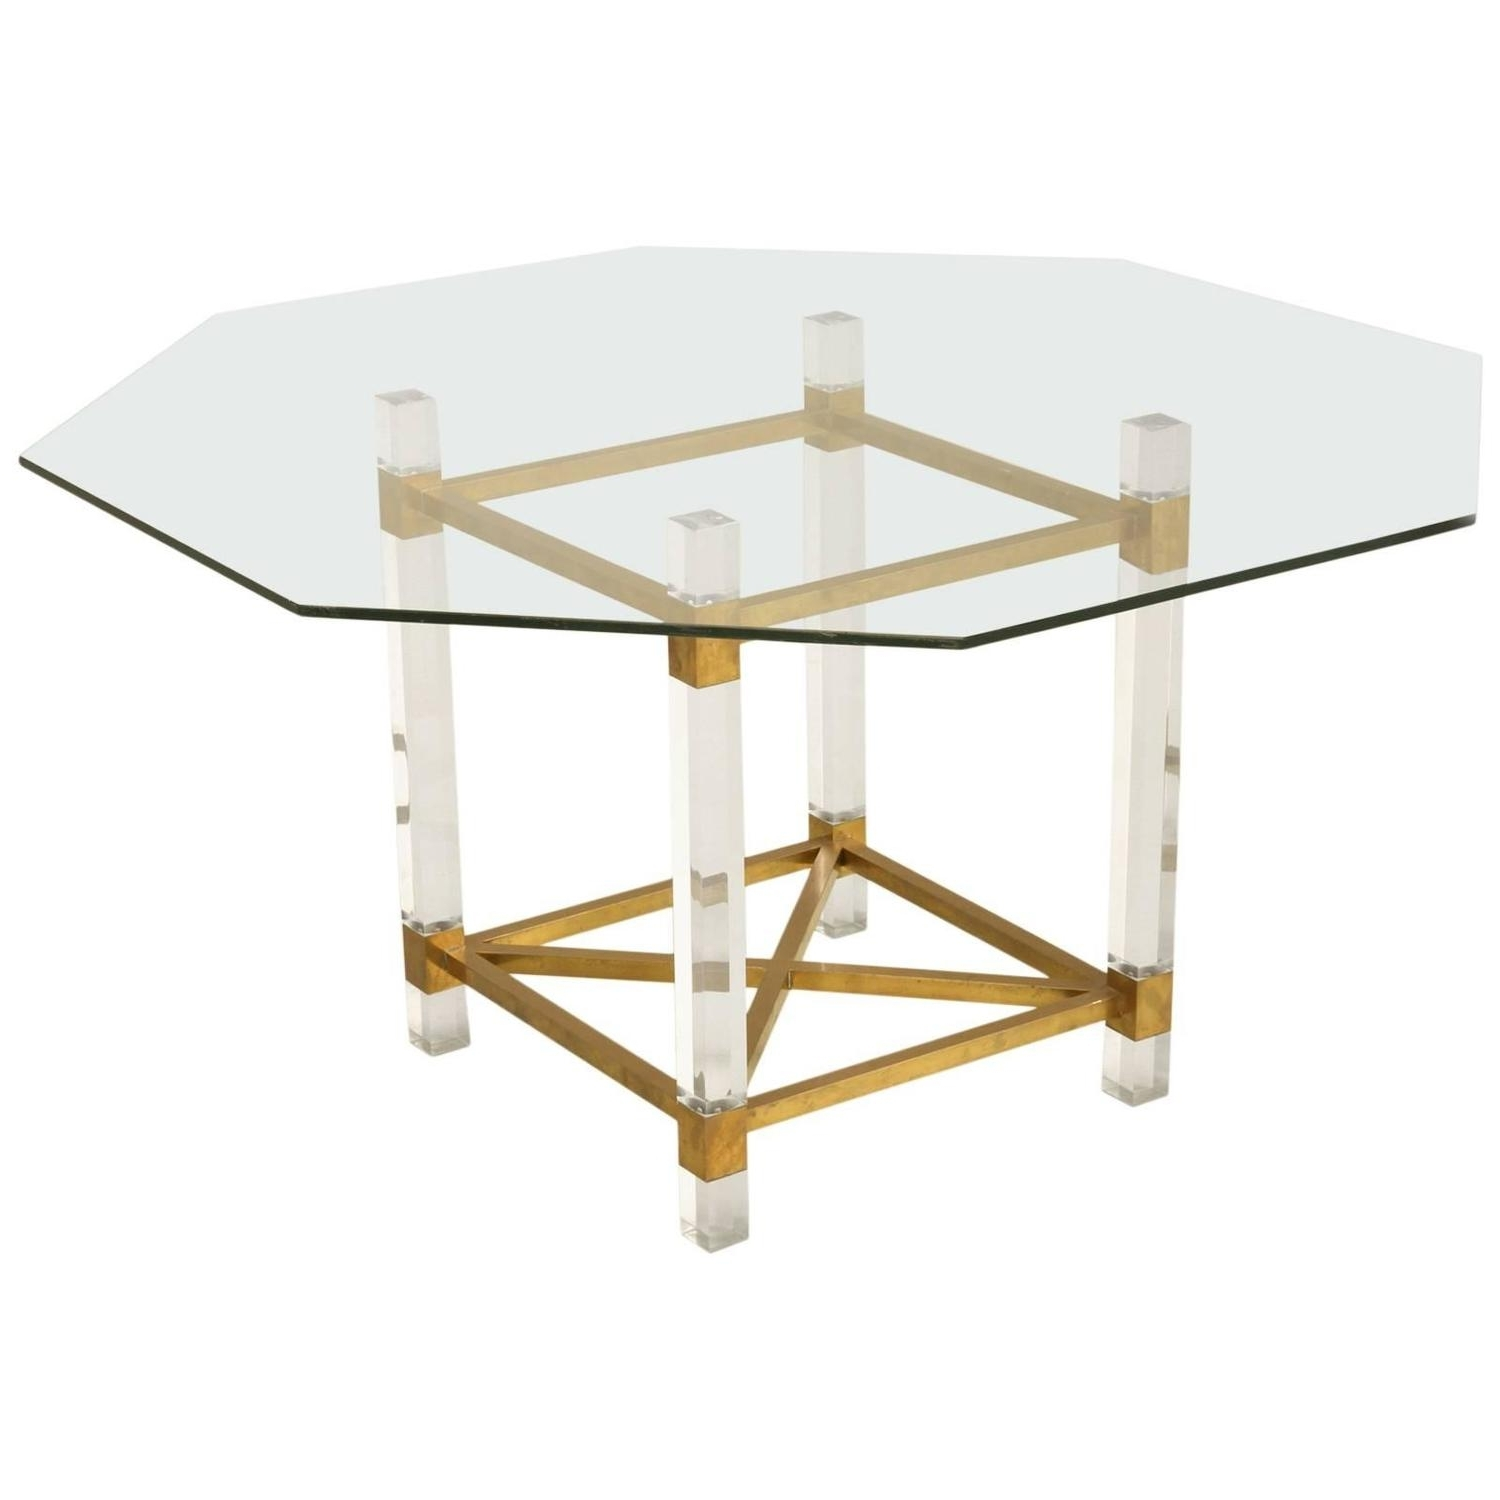 Acrylic Dining Tables In Favorite French Acrylic And Brass Dining Table For Sale At 1Stdibs (View 4 of 25)